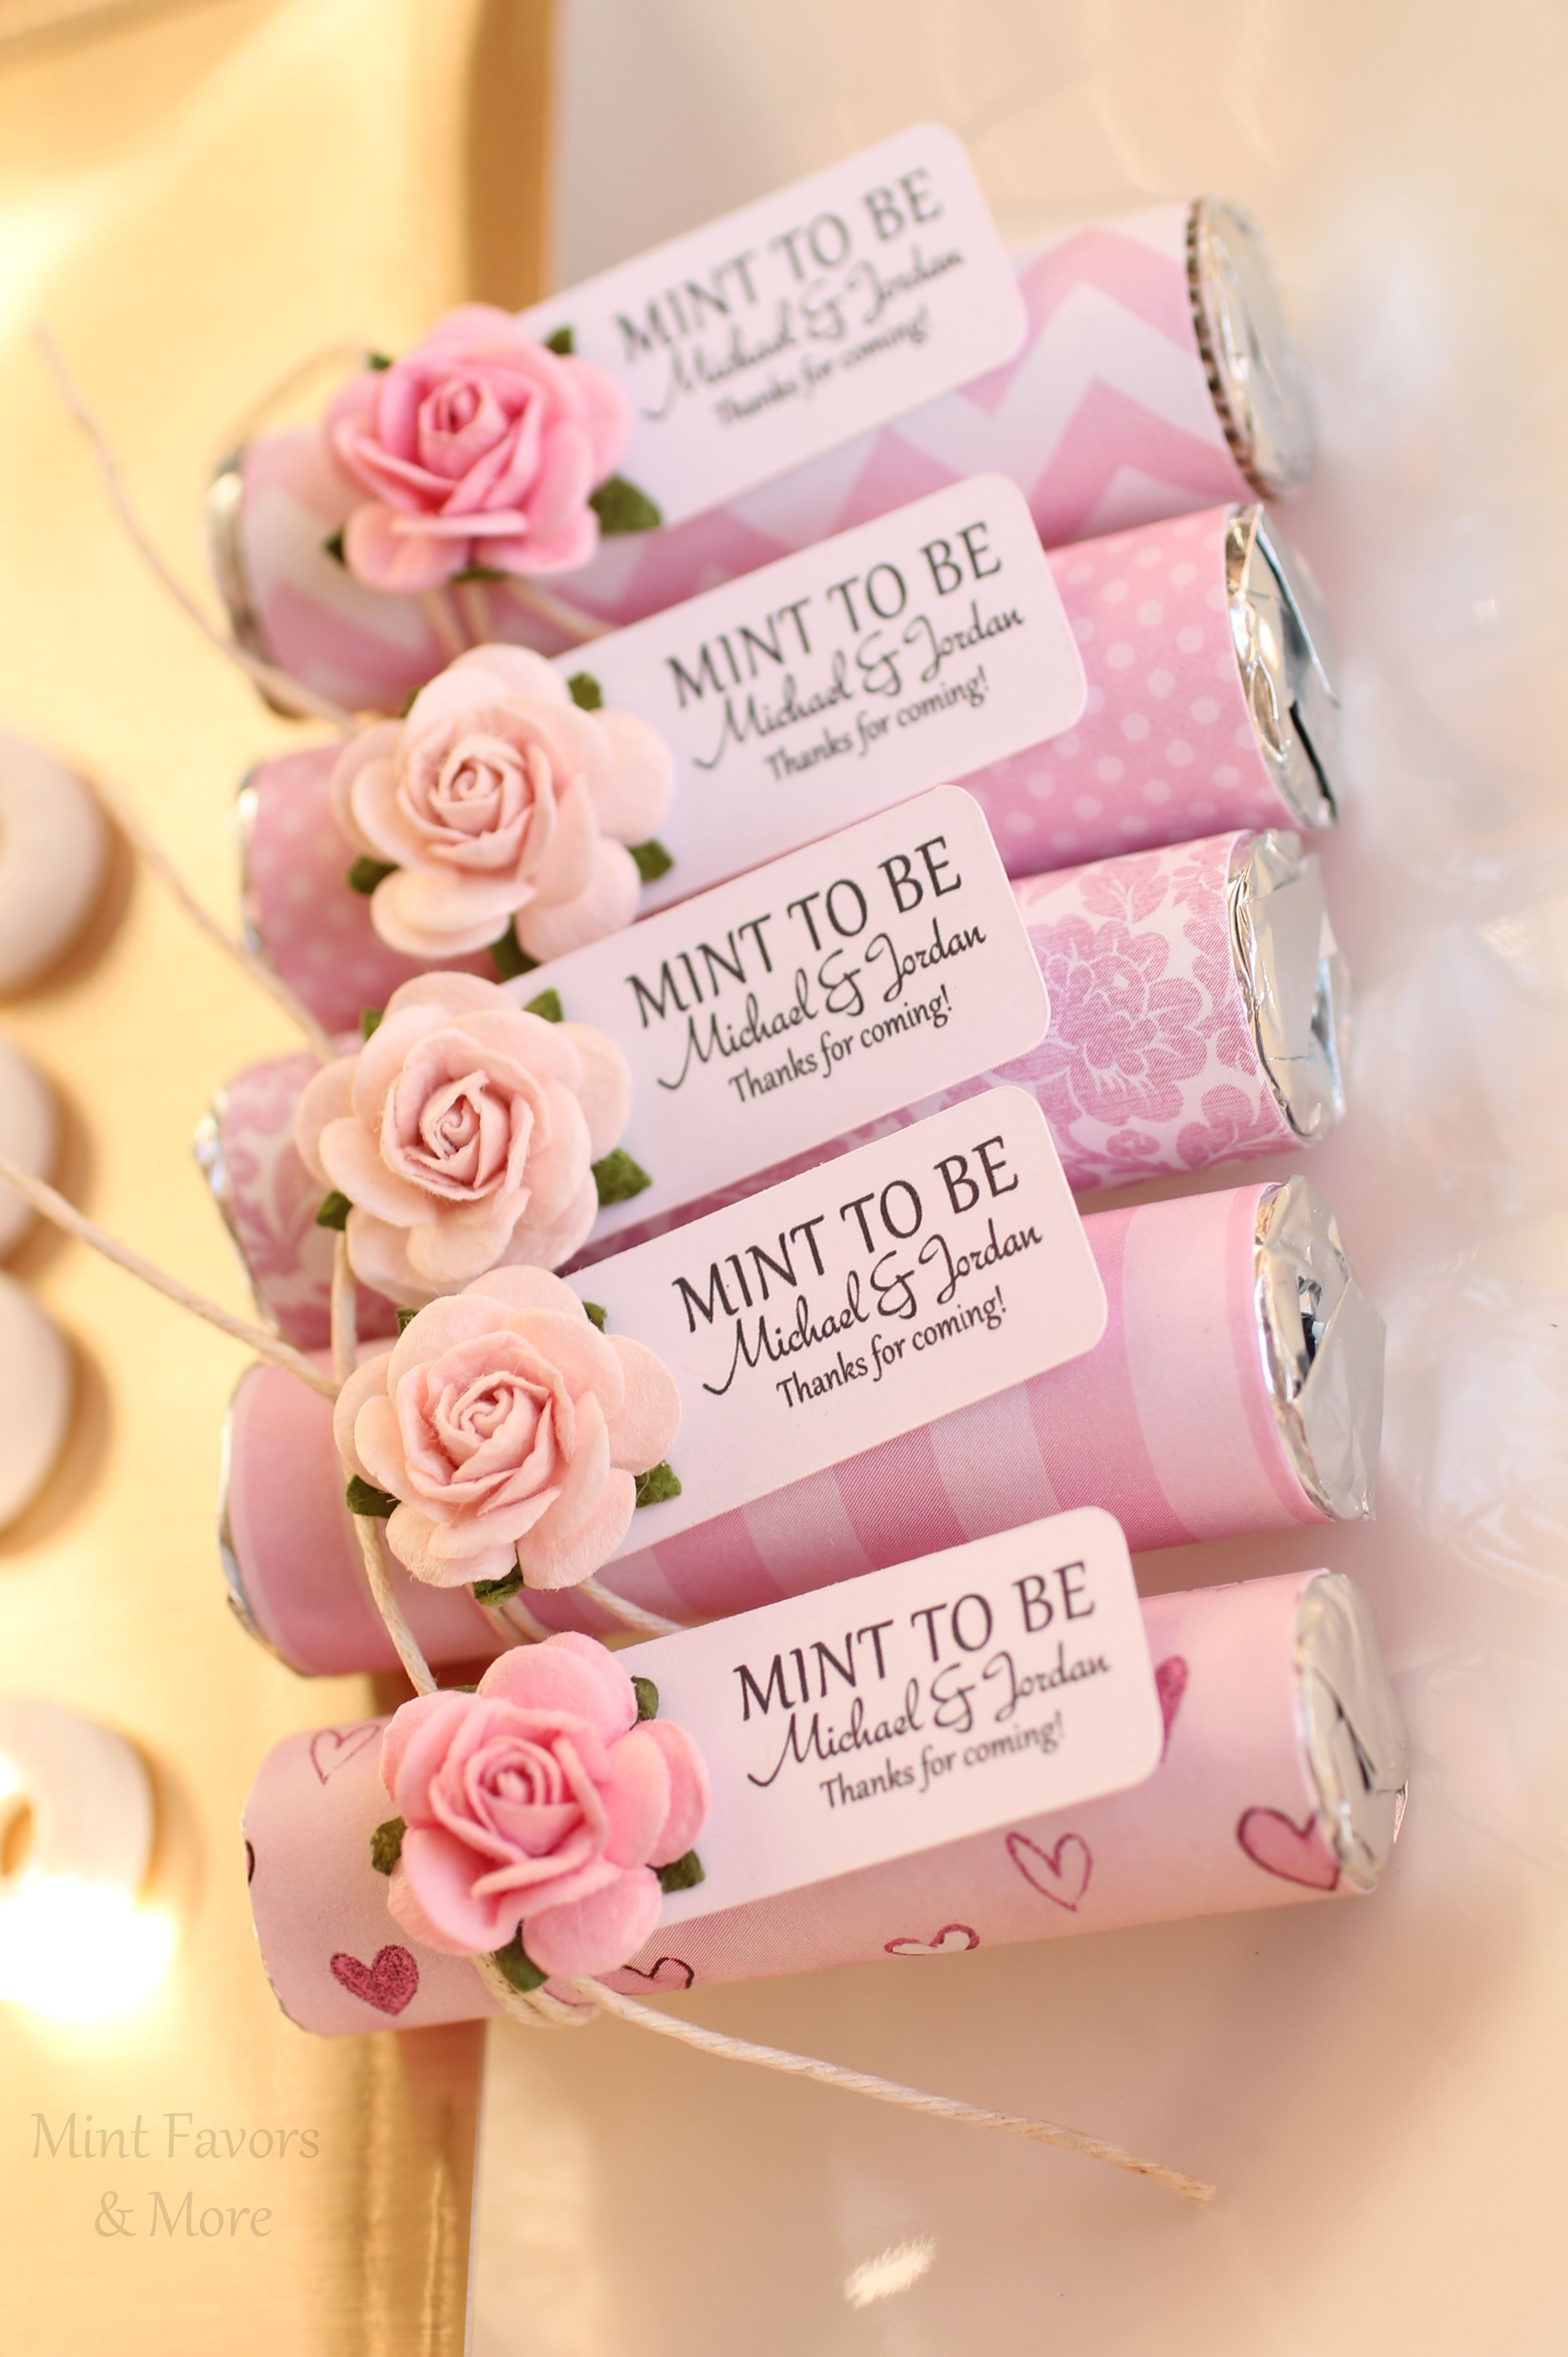 Mints pretty in pink! Wedding favors by @mintfavors ...